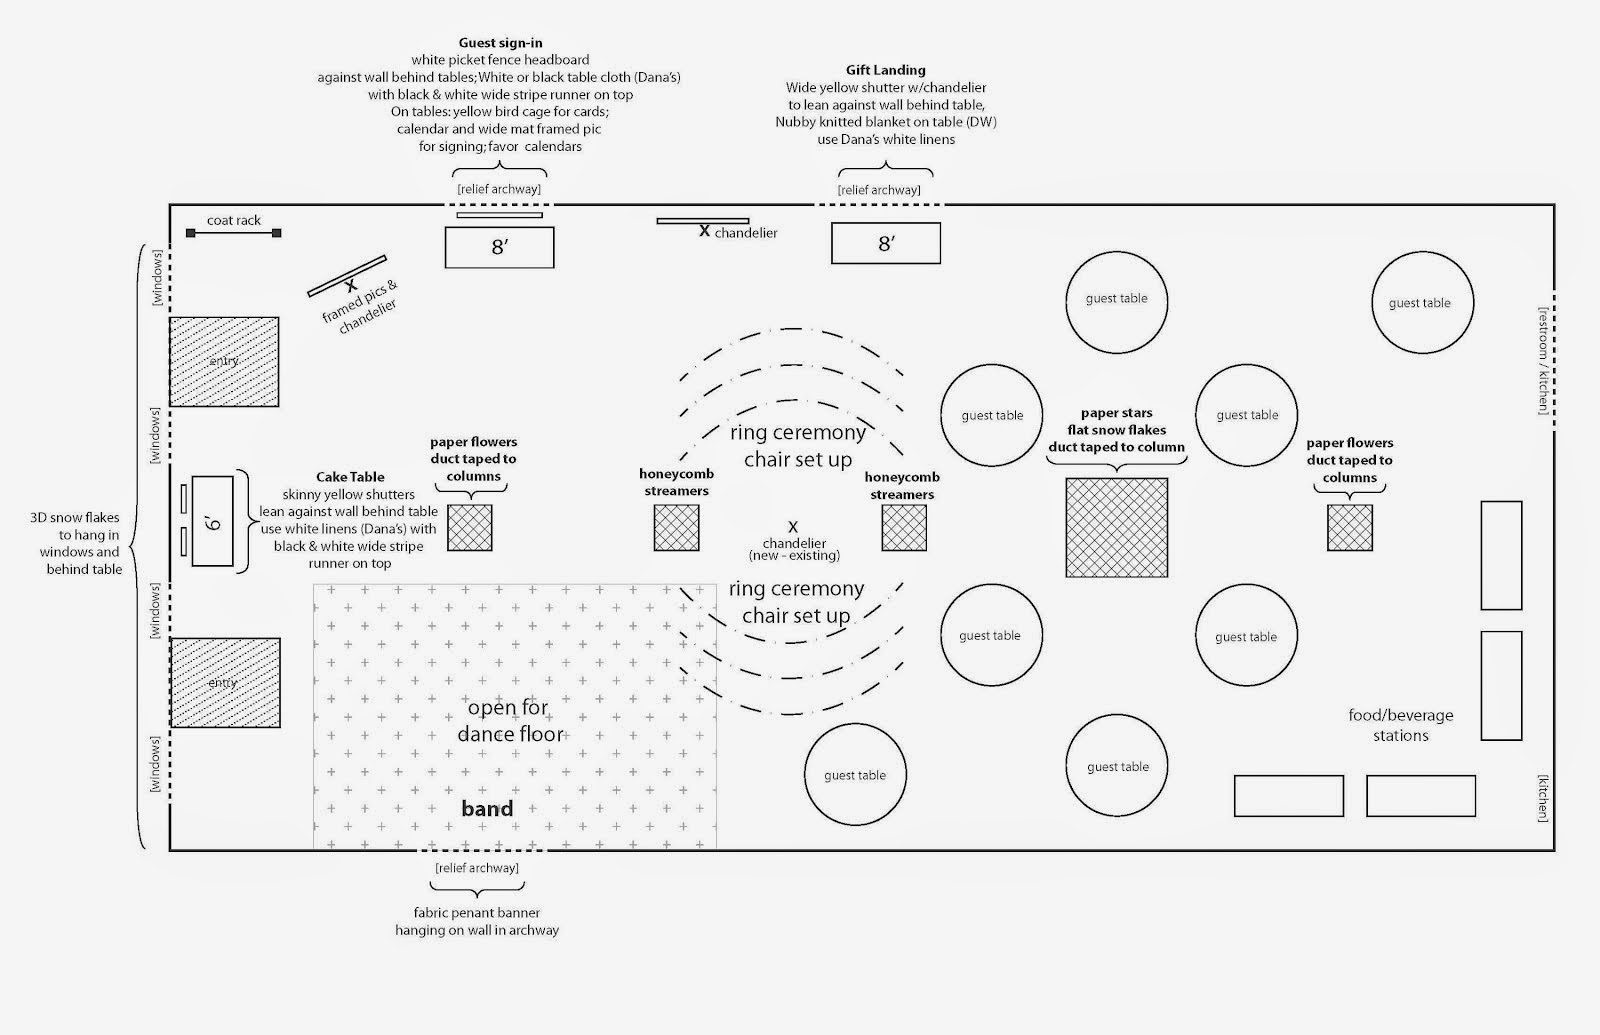 Table diagram for wedding reception images how to guide for Wedding reception layout tool